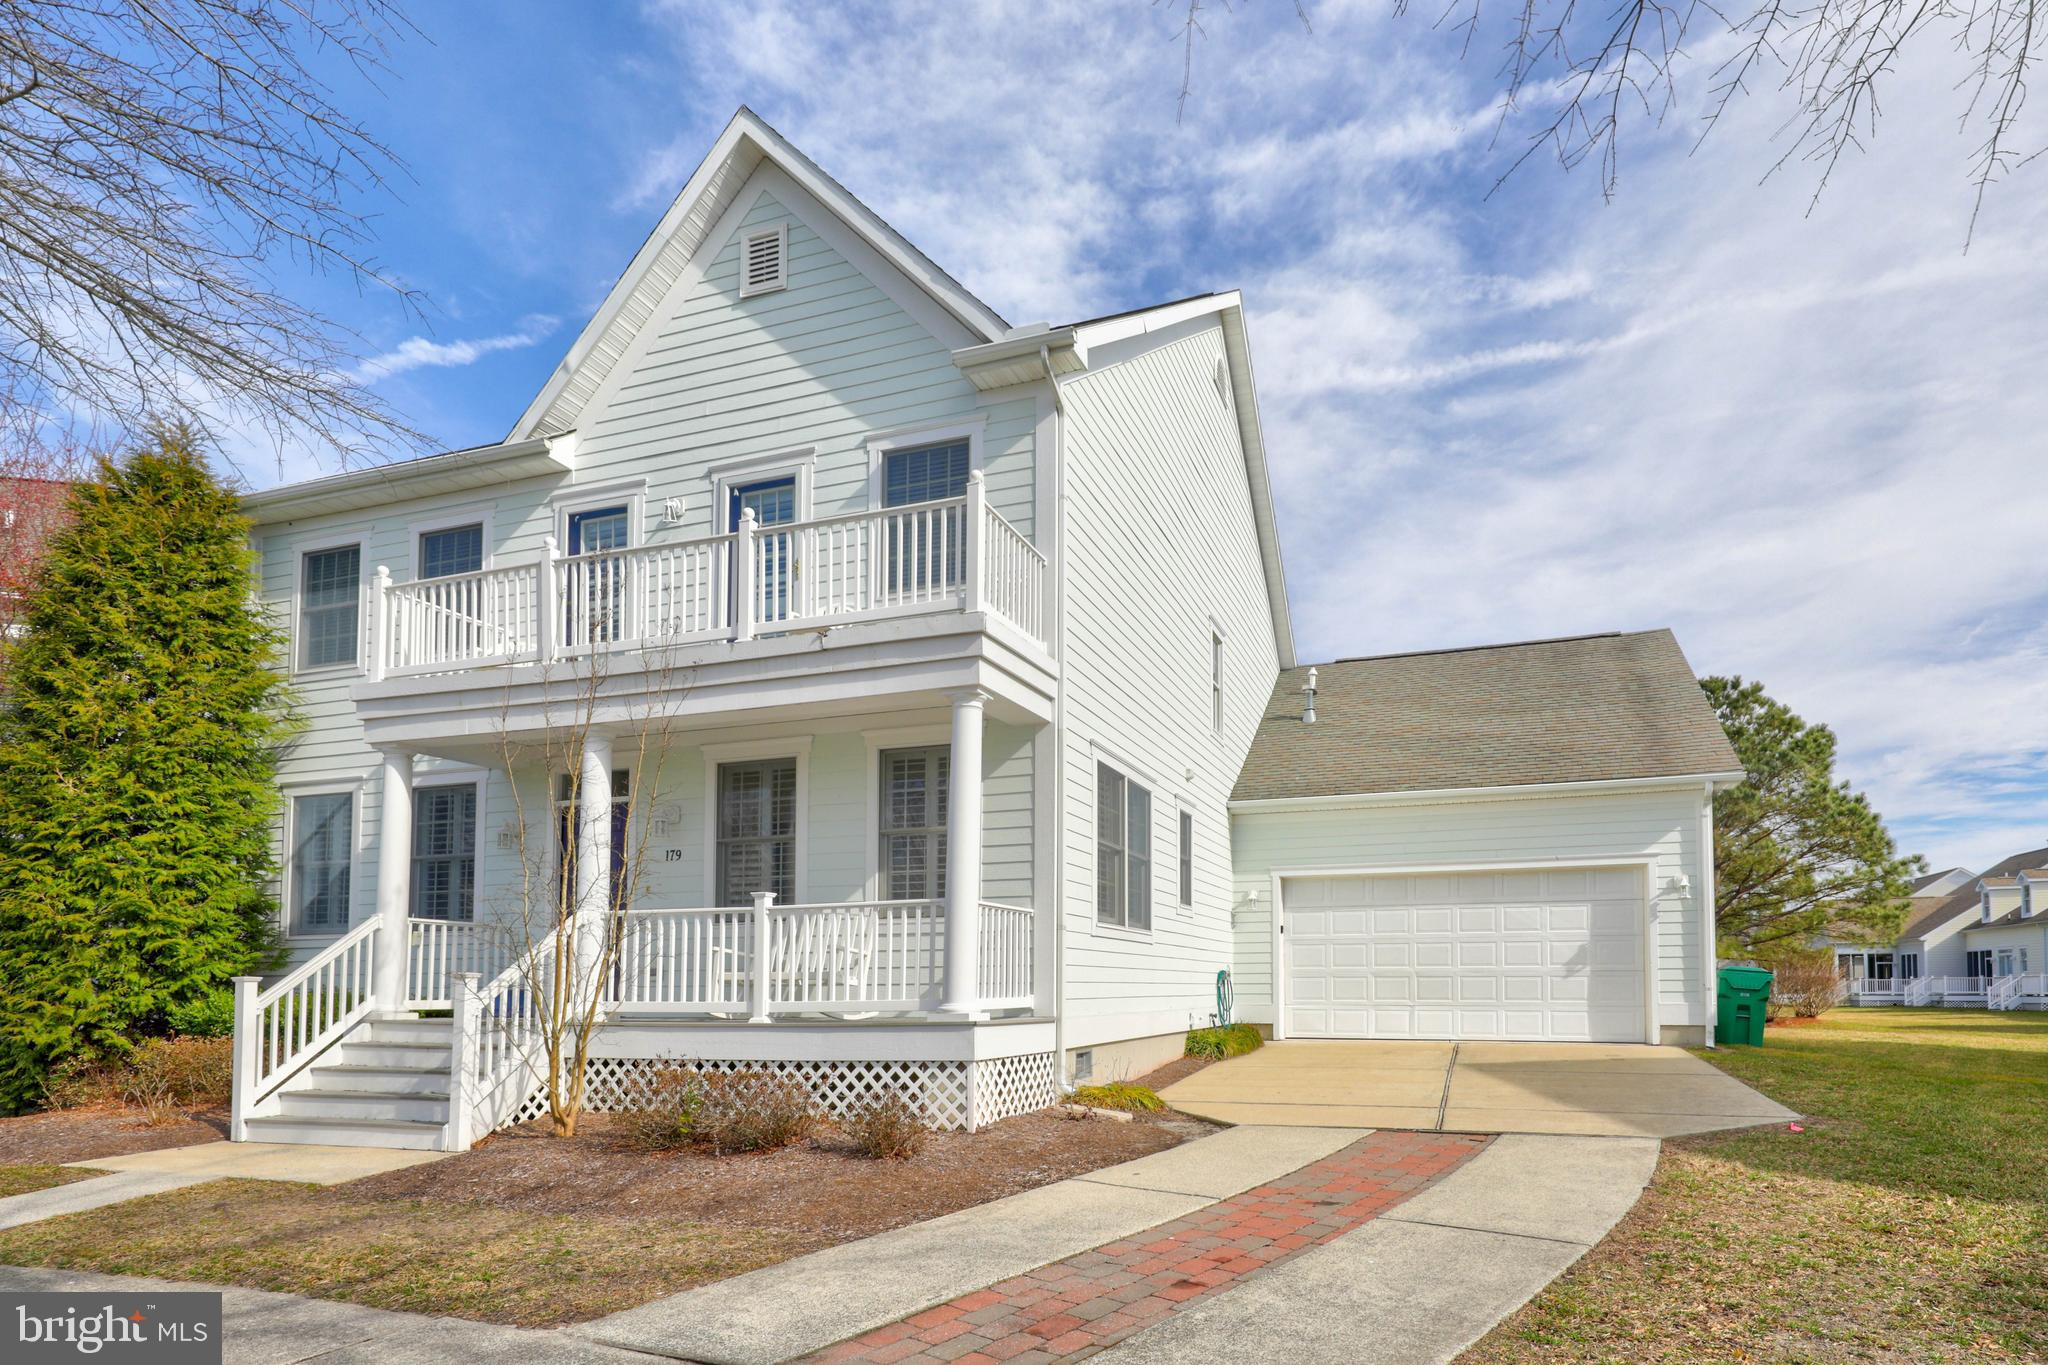 Amazing investment opportunity in the sought after community of Bear Trap Dunes is now available!  This 6 bedroom, 4 bath Single Family home offers 2878 sq. ft. with a unique floor plan that is rarely seen or offered for sale.  Located on a quiet cul-de-sac with double pond views, this golf/beach home has a proven gross rental return of 68K, per year!  The first floor boasts an oversized Master Bedroom with Spa Bath, 2 Guest Suites with shared Bath, spacious Kitchen with Island seating, farm table Dining area and natural lighting throughout. A second floor Master Ensuite and 2 additional Guest Bedrooms with shared Jack and Jill Bath make this home a spectacular gathering place for family and friends for Summer vacations and Spring and Fall get-a-ways.  Styled with coastal furnishings and equipped with everything you need so this home is turn-key and ready to go! Plus an incredible game room with pool table, ping pong table, dart board, music and other fun filled games to enhance your vacation experience.  Multiple balconies, front porch, screen porch and paver patio with grill offer excellent outside dining and extended living areas. Hop on the Bear Trap Beach Shuttle to the award winning Bethany Beach and all its fabulous shops and eateries.  The Quiet Resorts are waiting for you and Bear Trap is just where you want to be!  Bear Trap Dunes is an award winning community with outstanding amenities. Indoor/outdoor pools, tennis, fitness center with whirlpool and saunas, basketball, pickleball and the Bear Trap Dunes Golf Course and Clubhouse with restaurant and bar. It is all that you were hoping for!